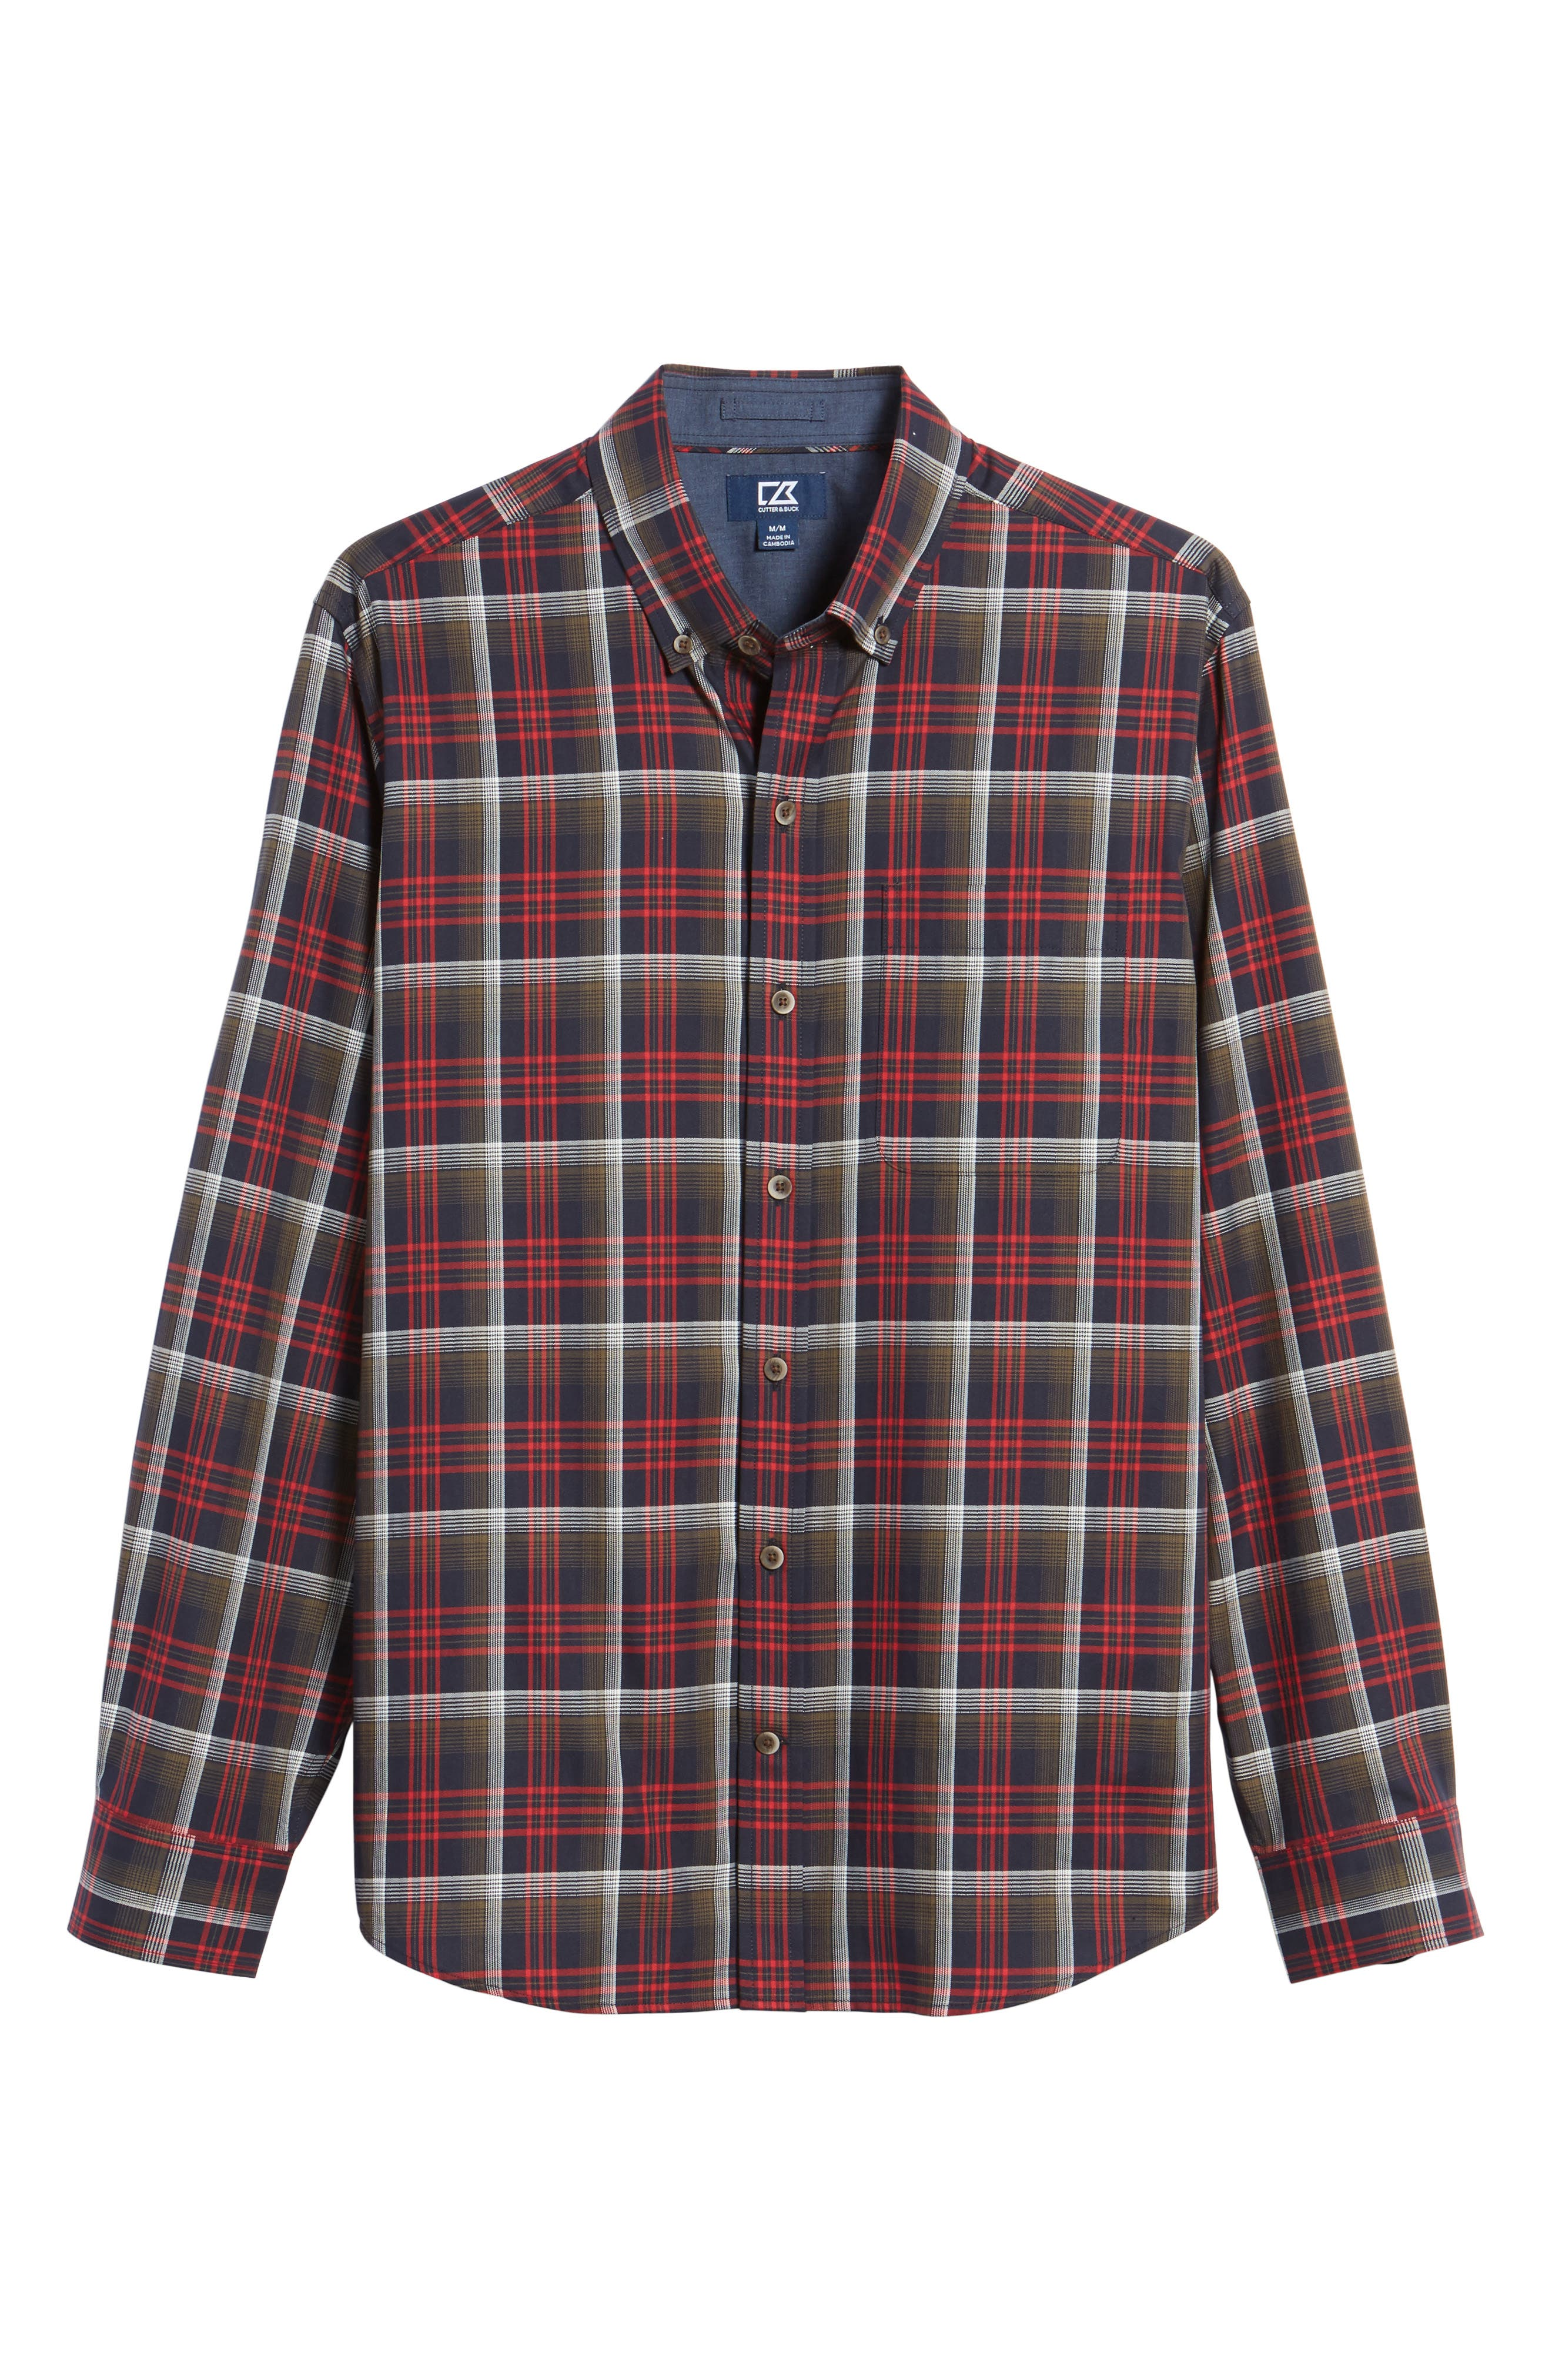 Dry Creek Non-Iron Plaid Sport Shirt,                             Alternate thumbnail 6, color,                             622